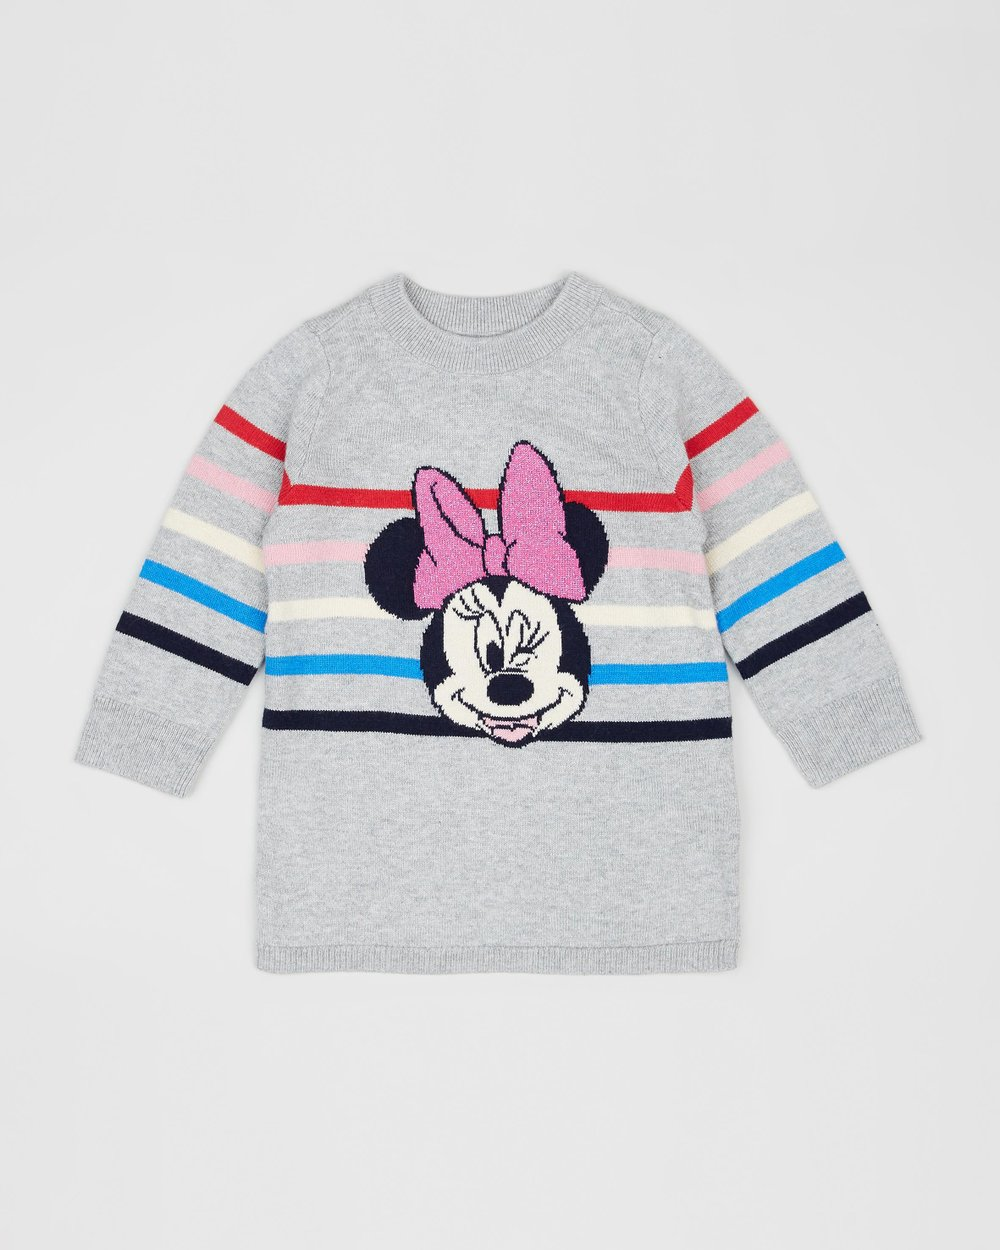 2f181b51b Disney Minnie Mouse Sweater - Babies-Kids by babyGap Online